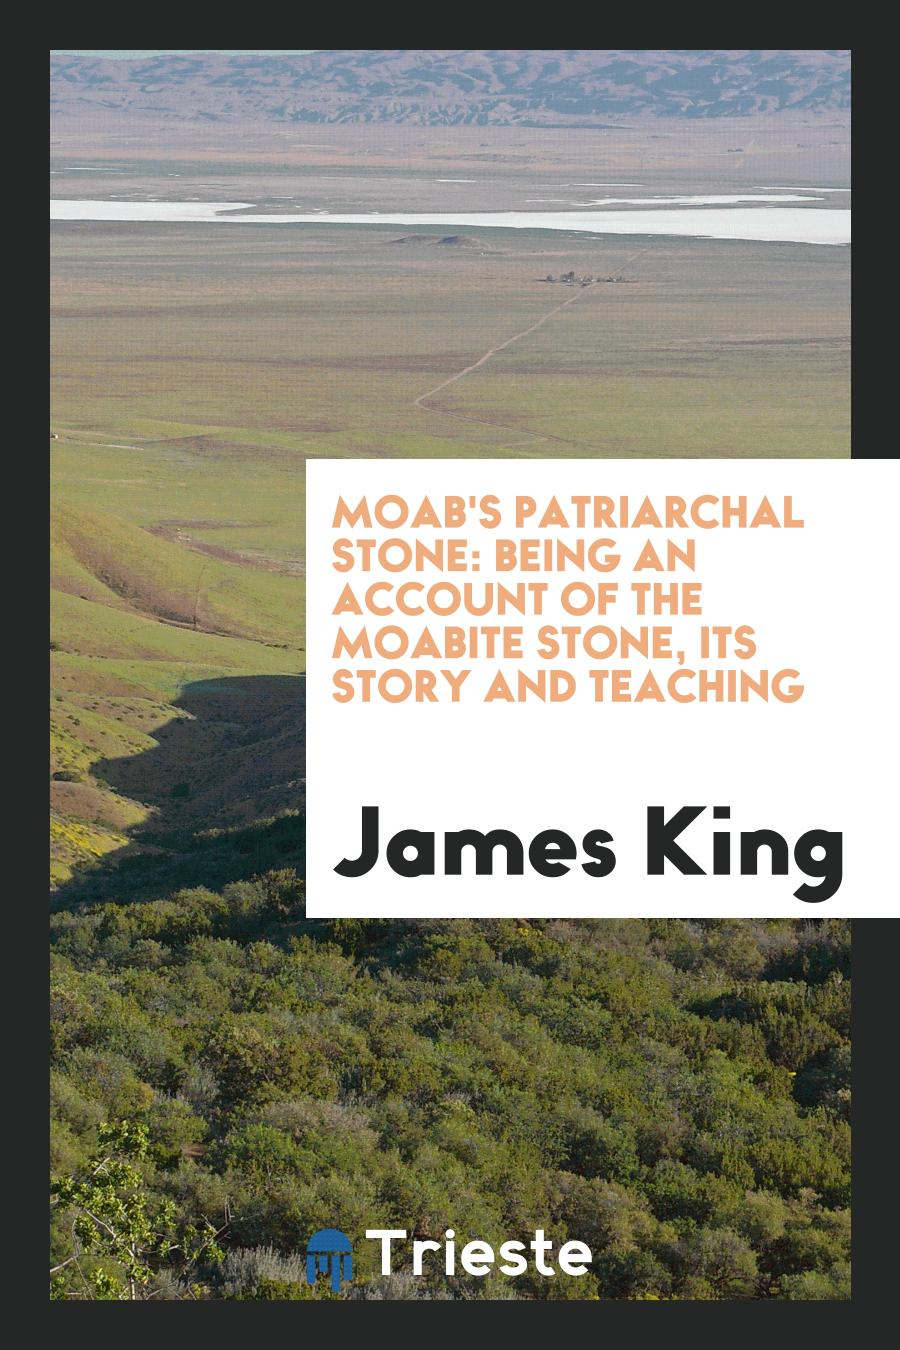 Moab's Patriarchal Stone: Being an Account of the Moabite Stone, Its Story and Teaching